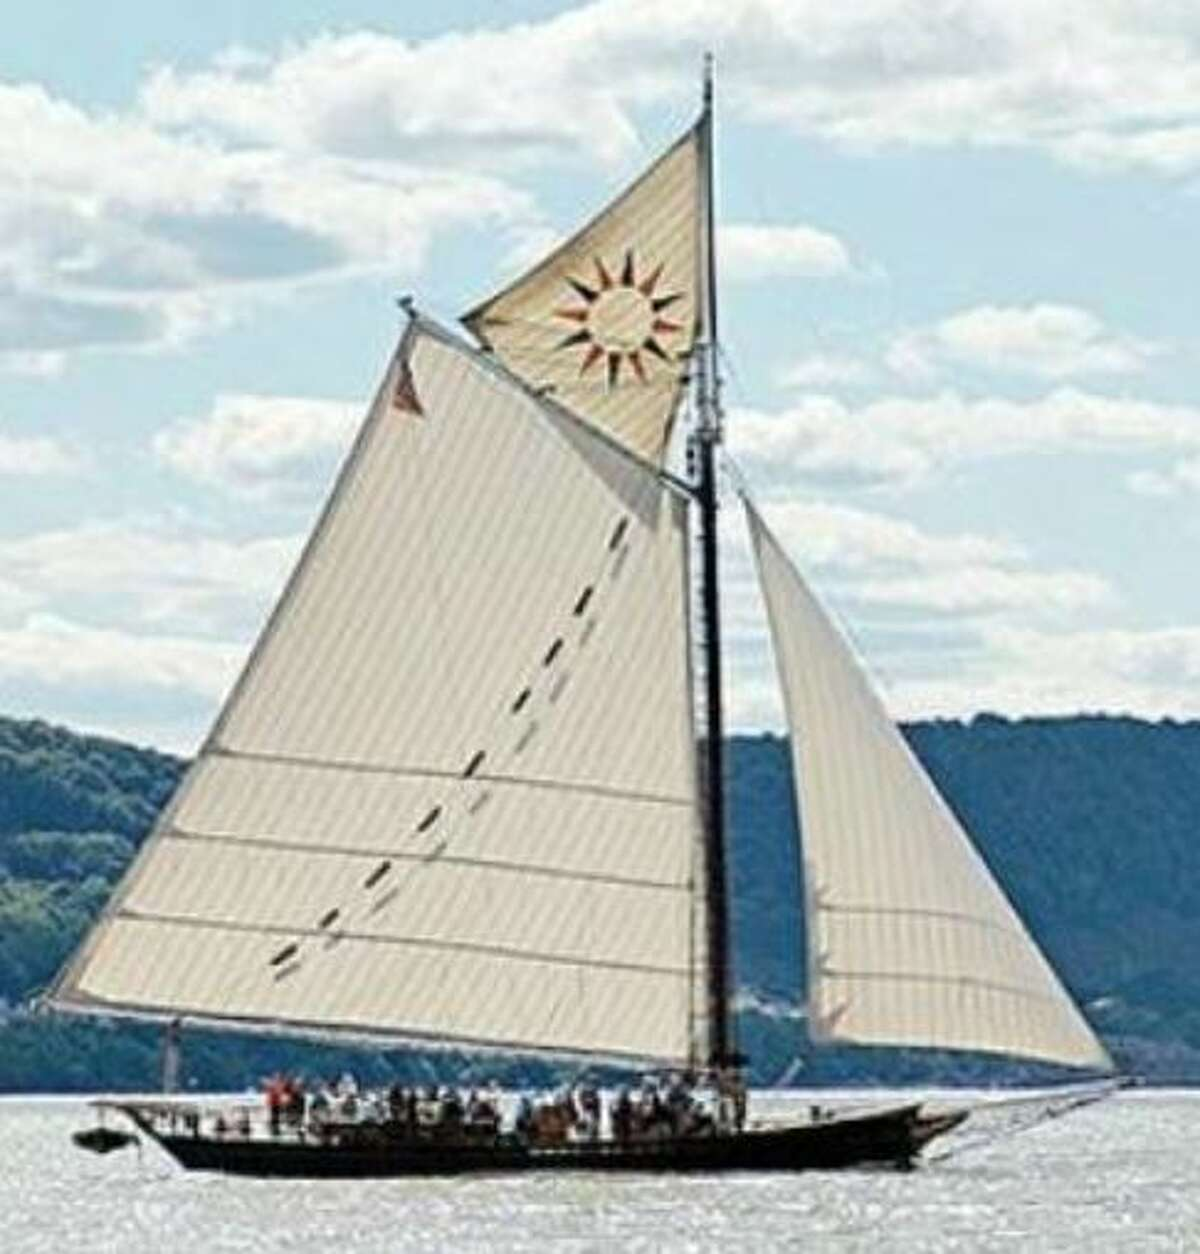 The Clearwater sloop's first Captain, Allan Aunapu, has died at 79.